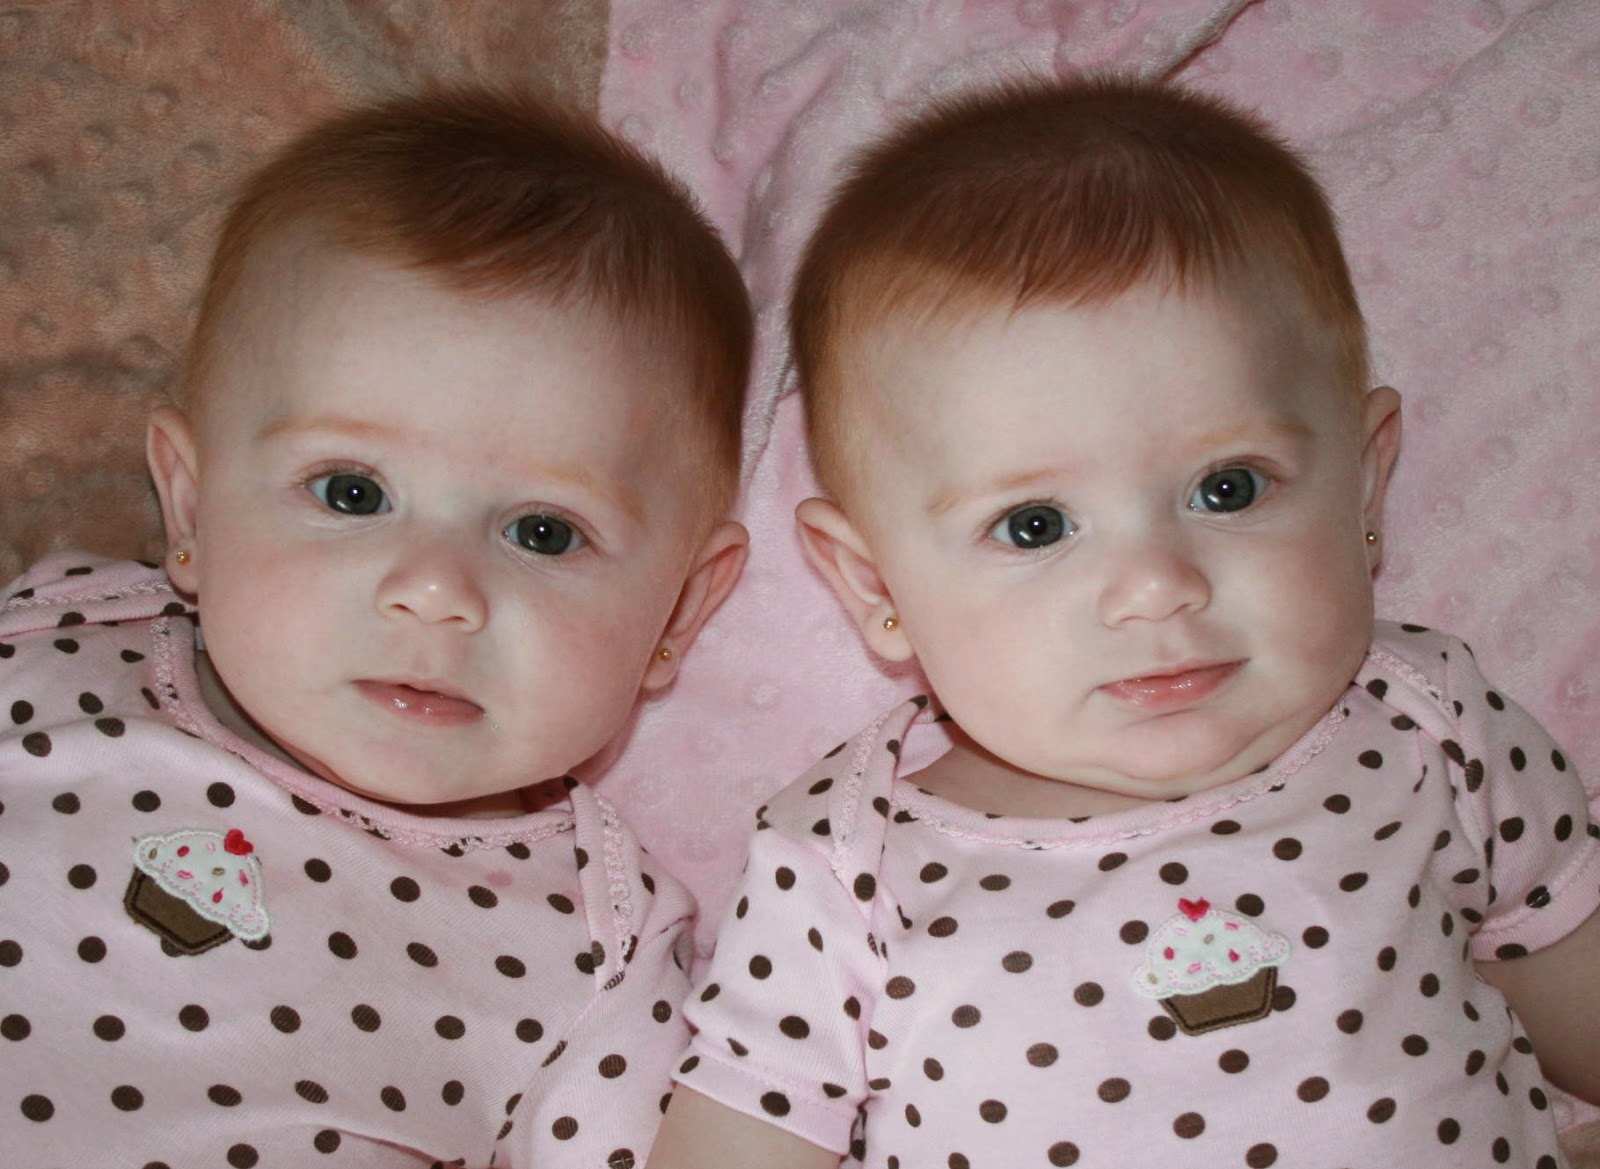 Download Twin Girls Baby Hd Wallpapers Cute Baby Girl Wallpapers For Your Mobile Cell Phone